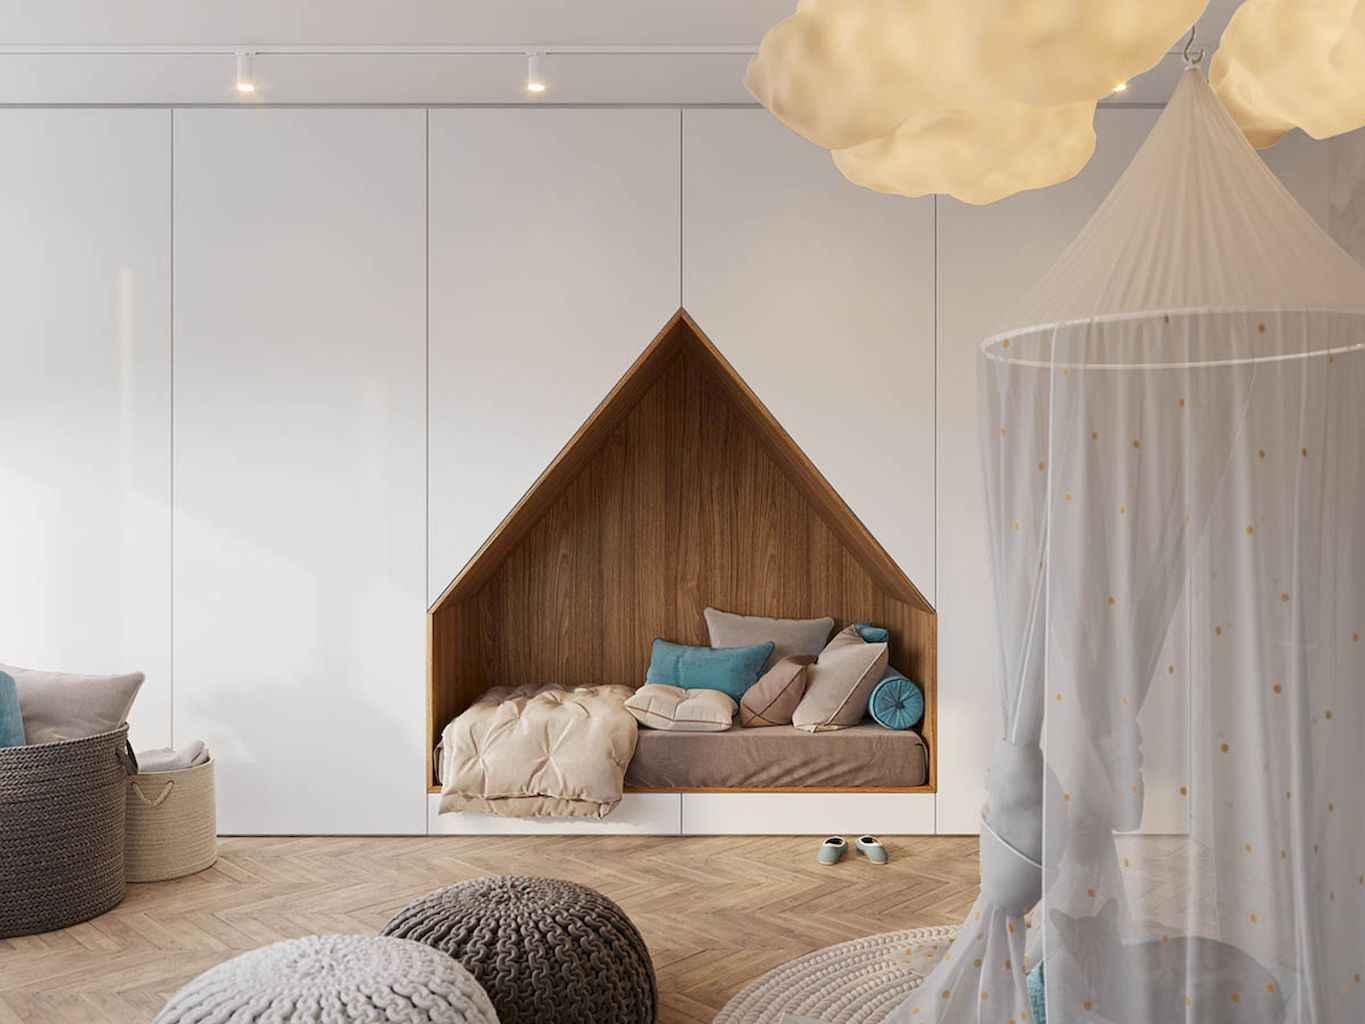 Simply ideas bedroom for kids (49)